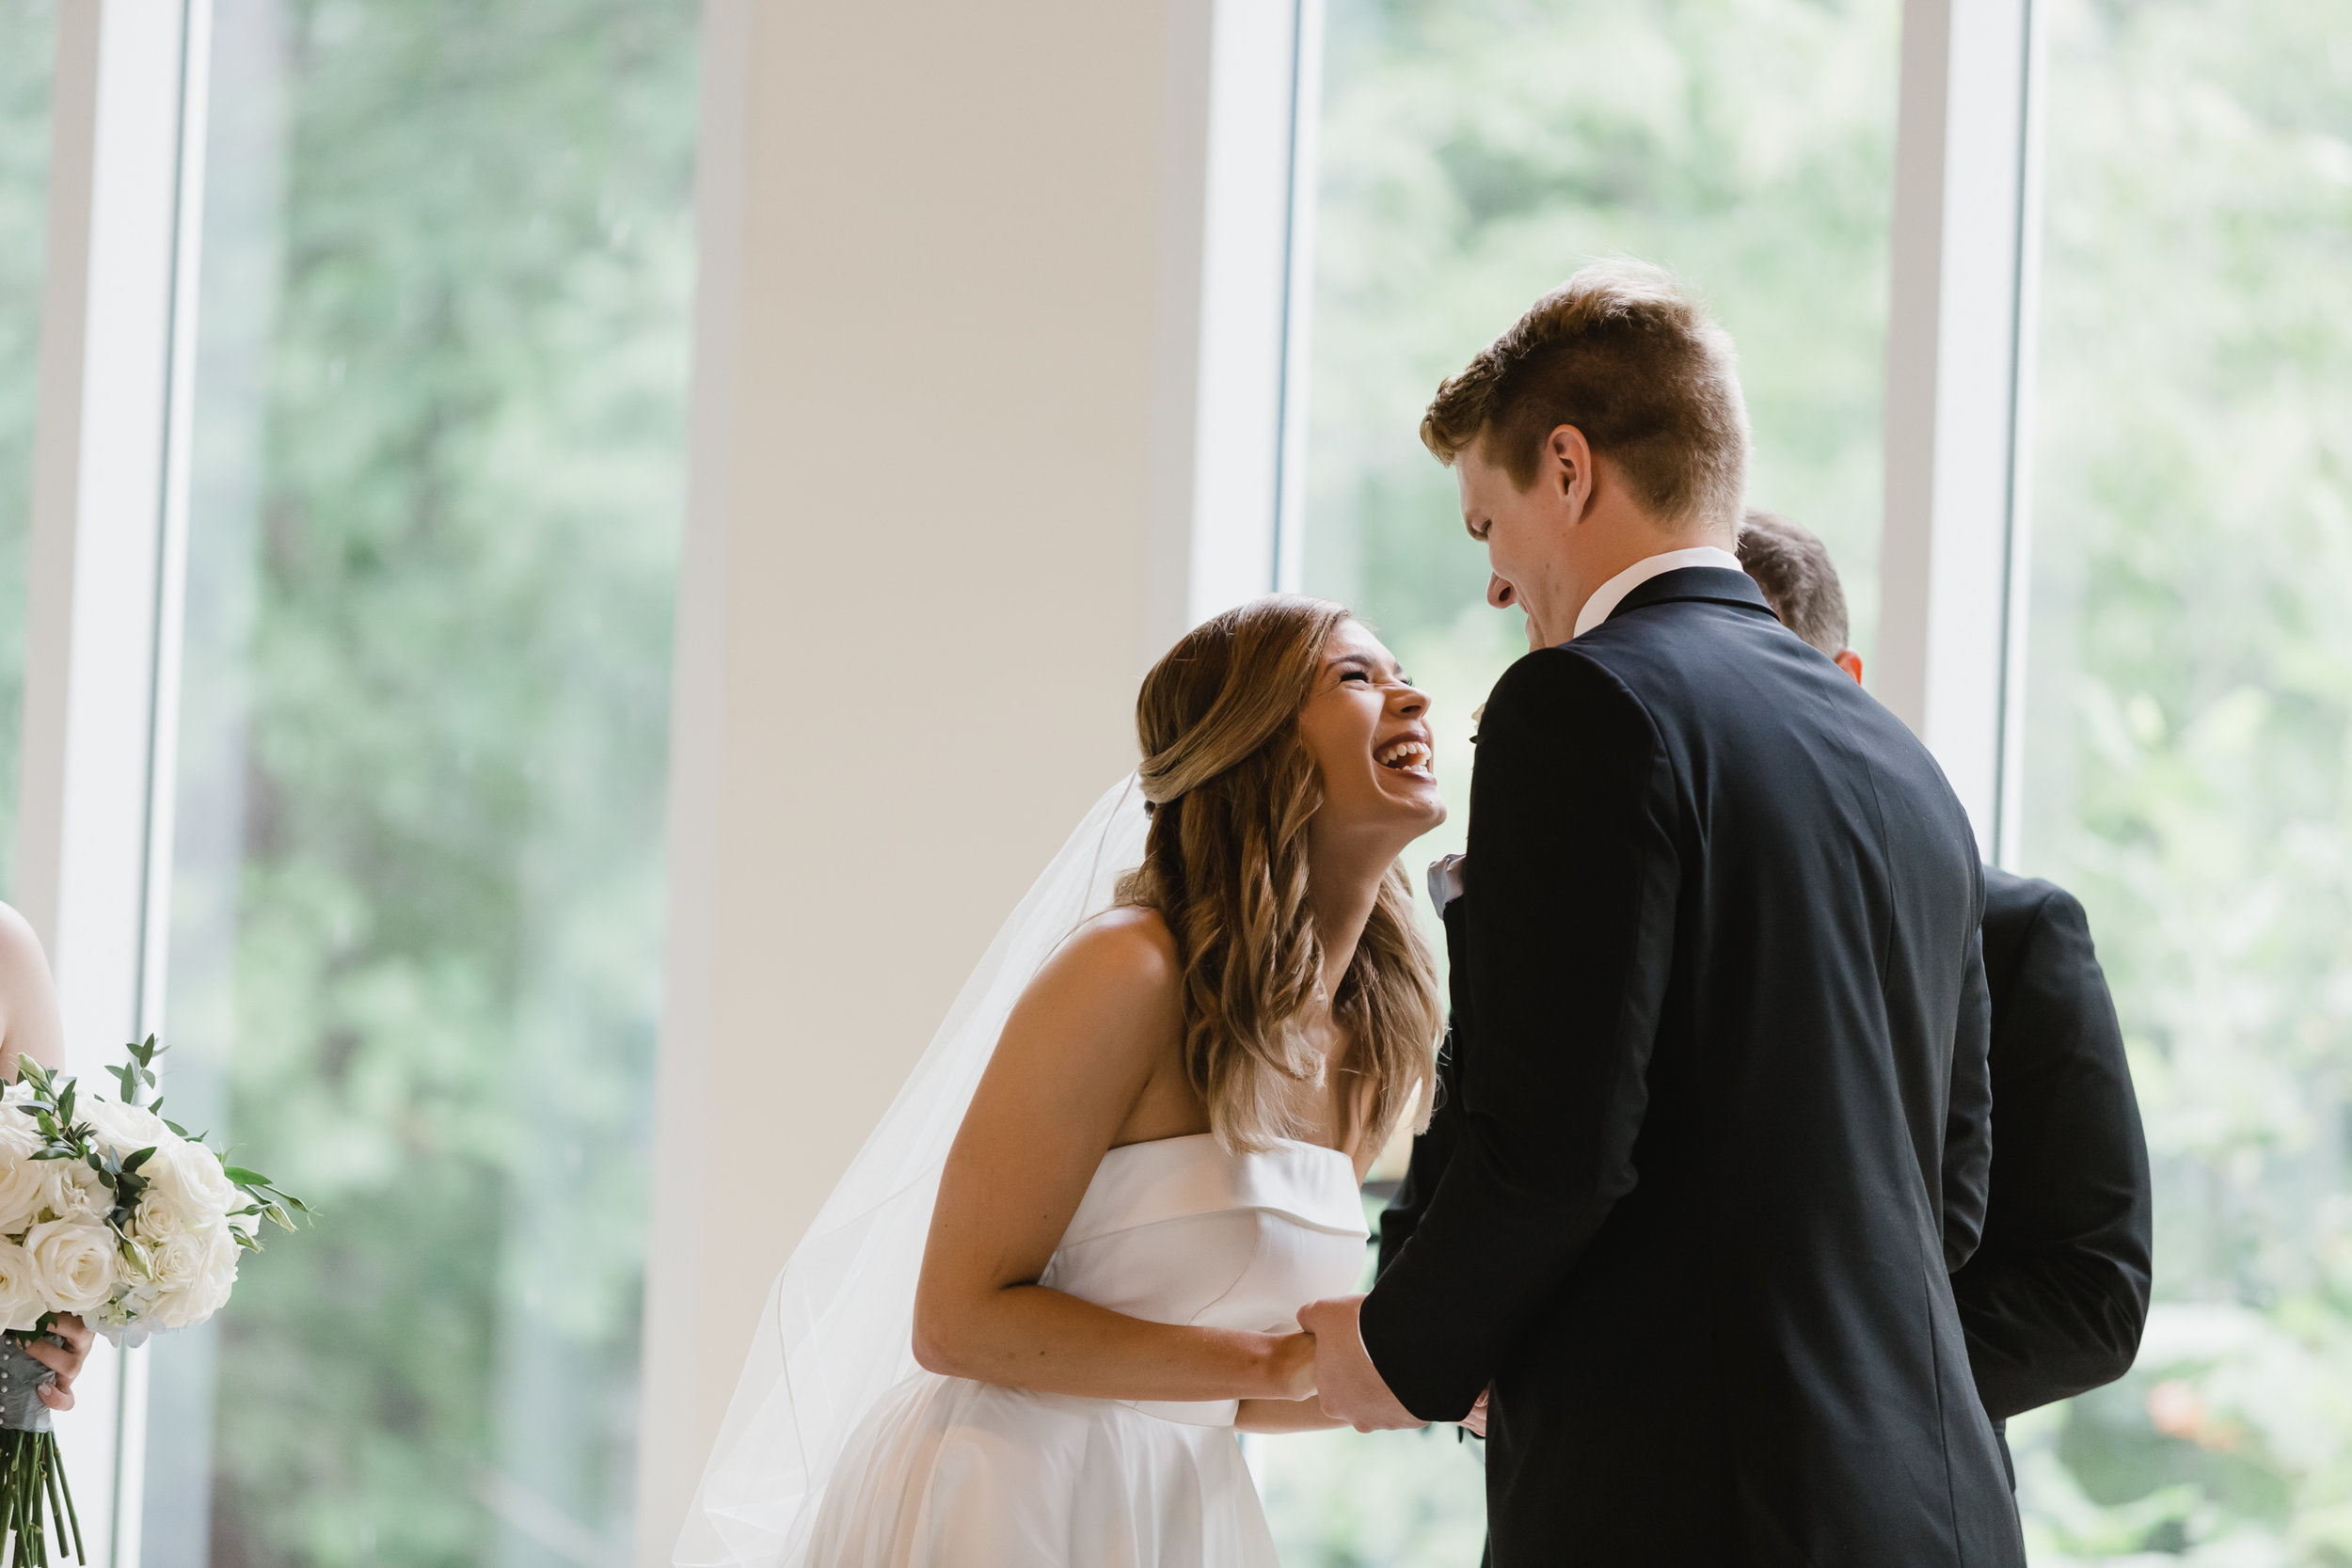 Gianna Keiko Atlanta NYC California Wedding Photographer_sneak peek-31.jpg